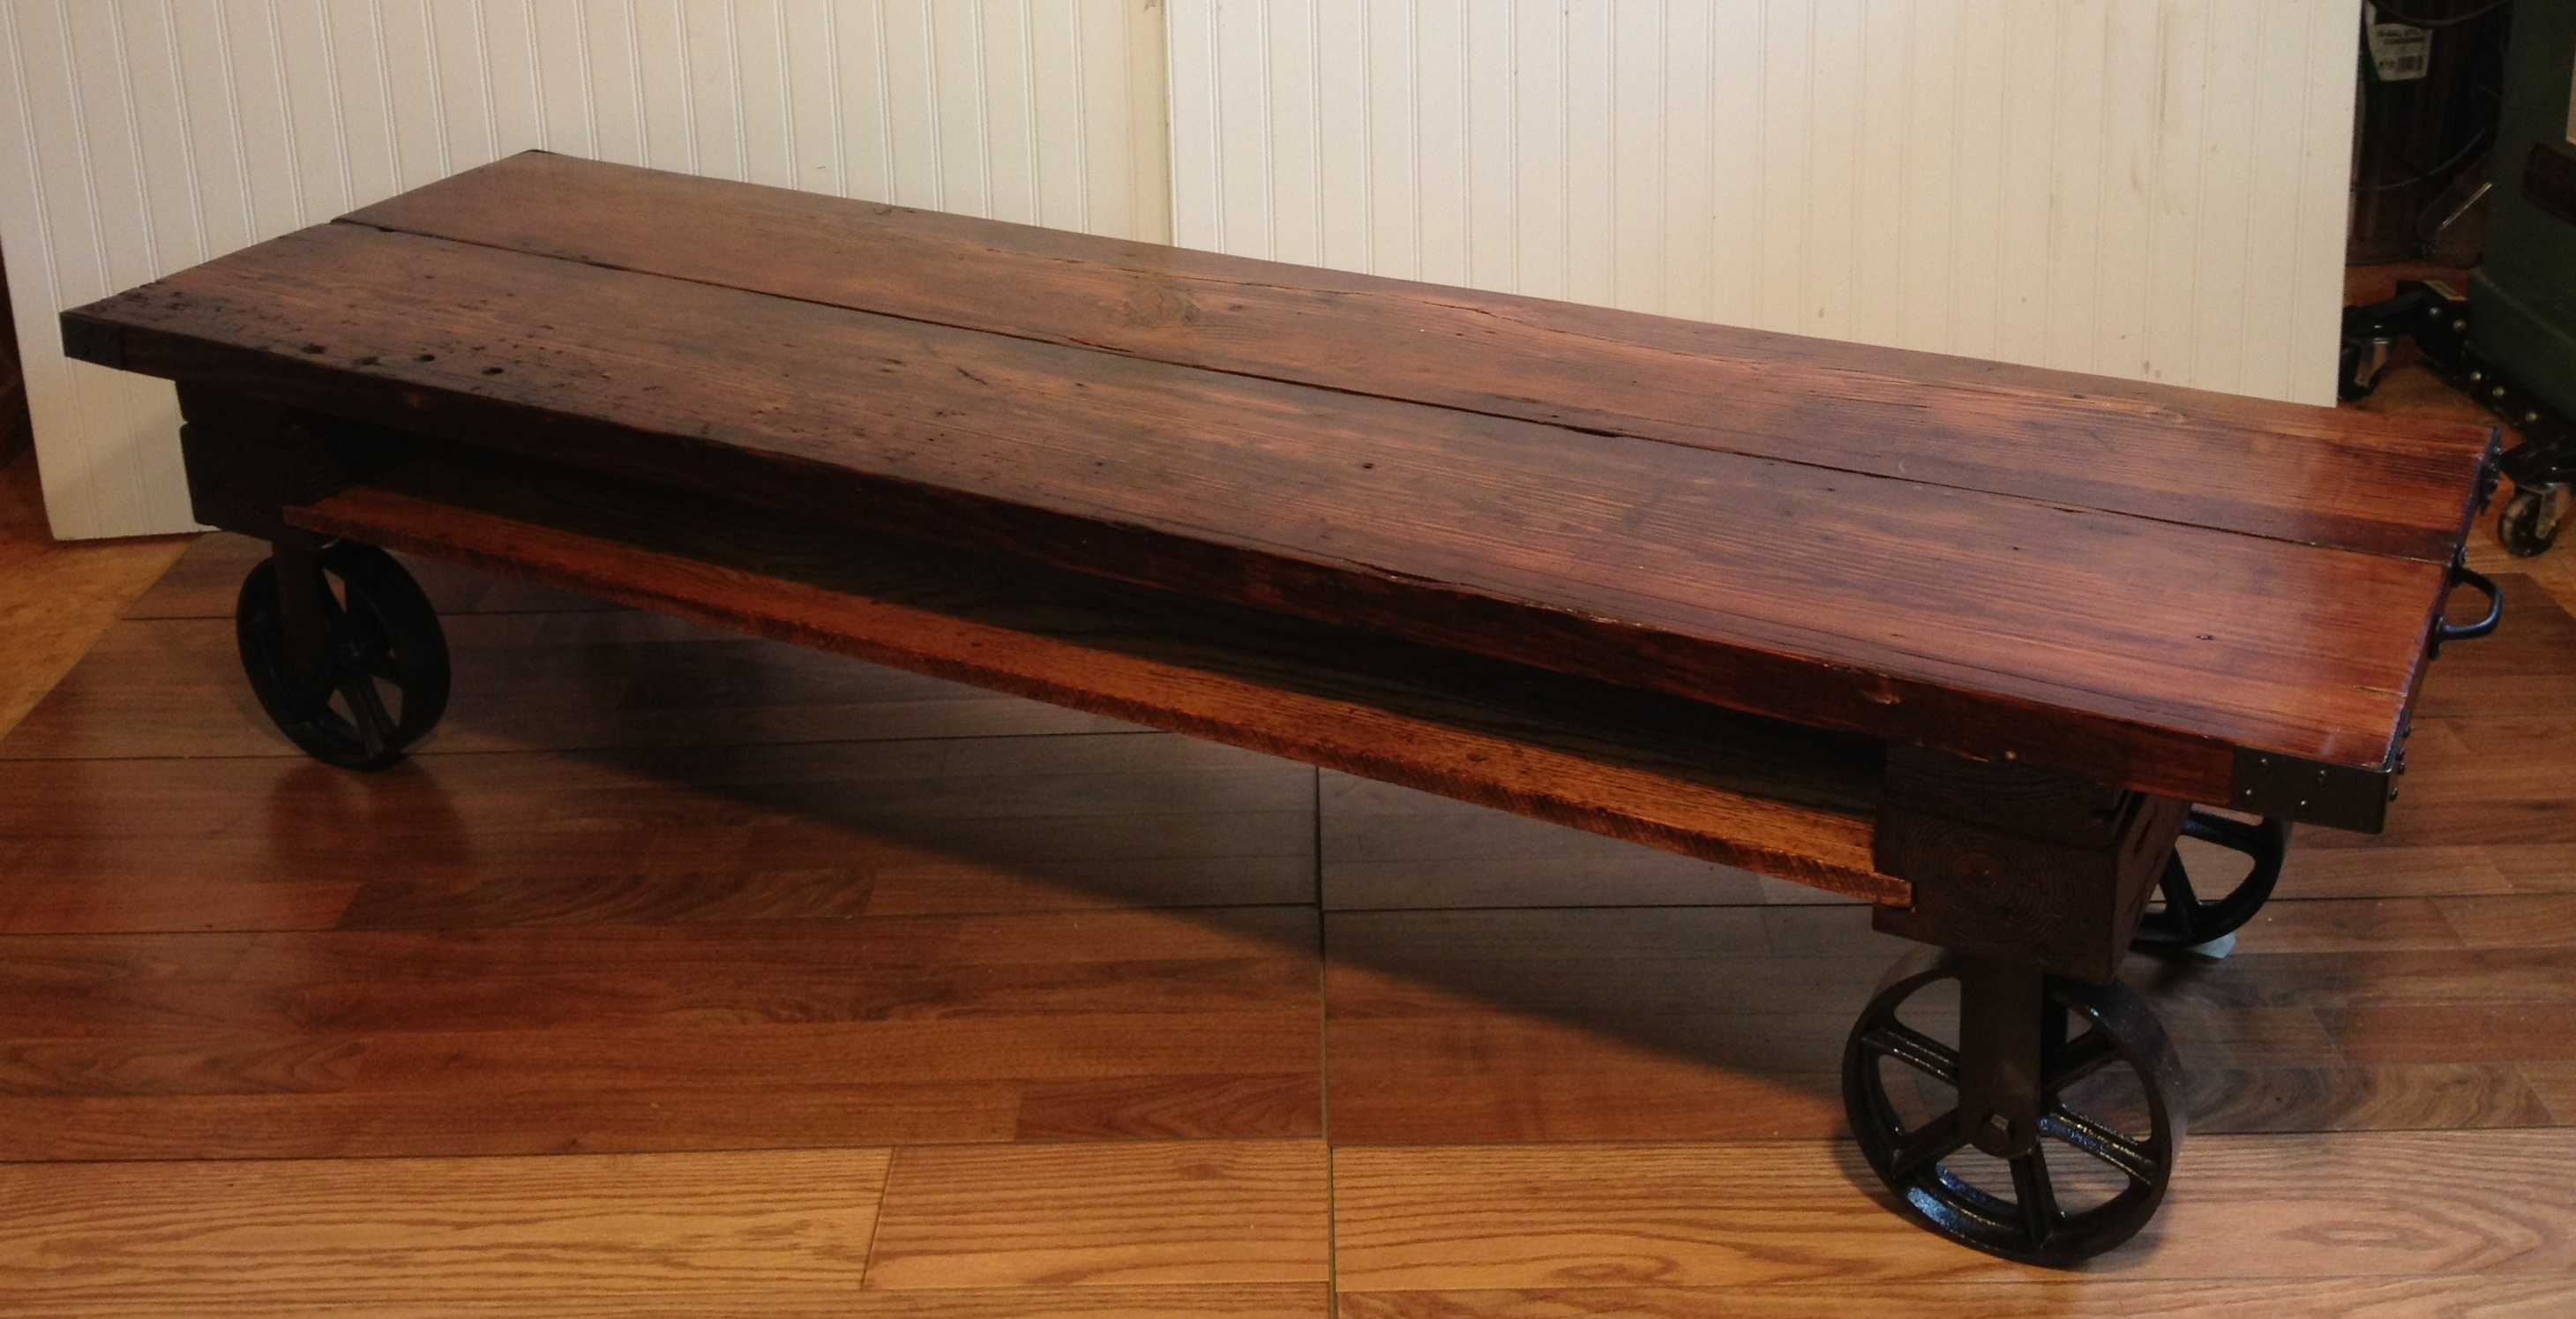 Industrial Rectangular Coffee Table With Wheels